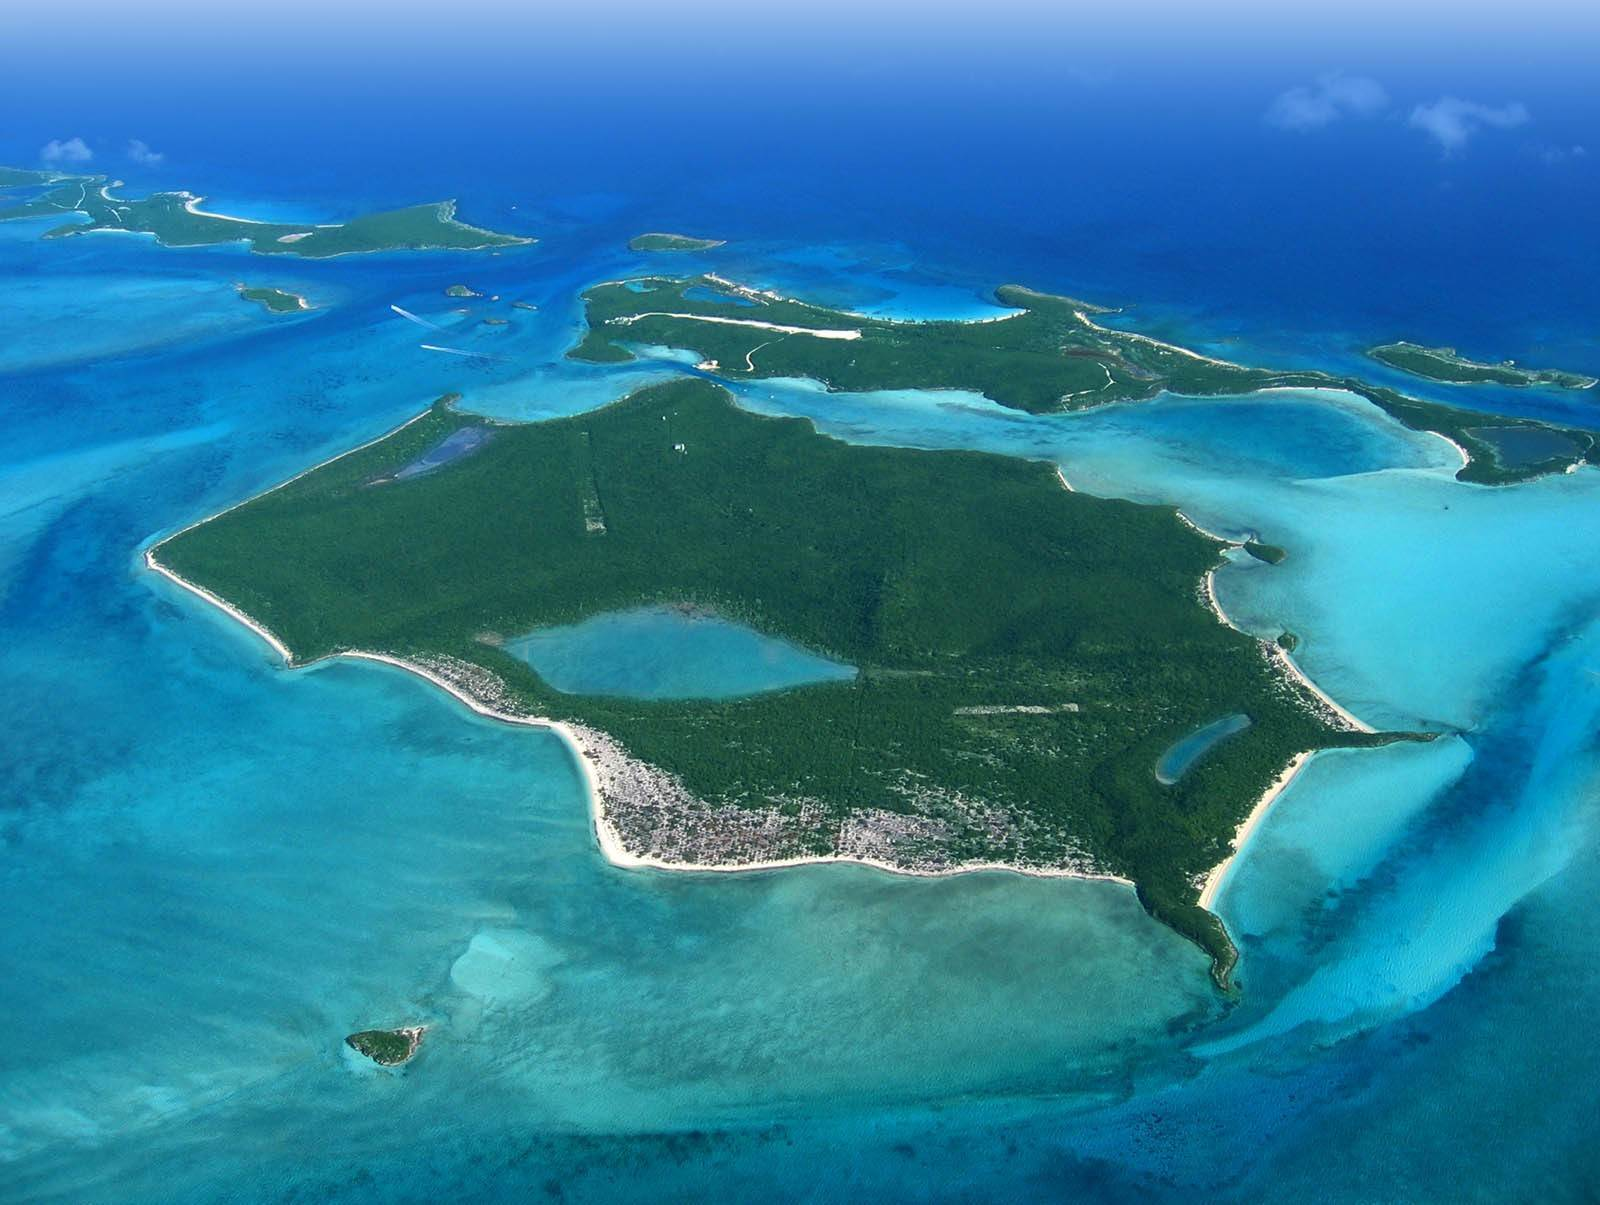 10. Private Islands for Sale at Enchanting Private Island Exuma, Bahamas